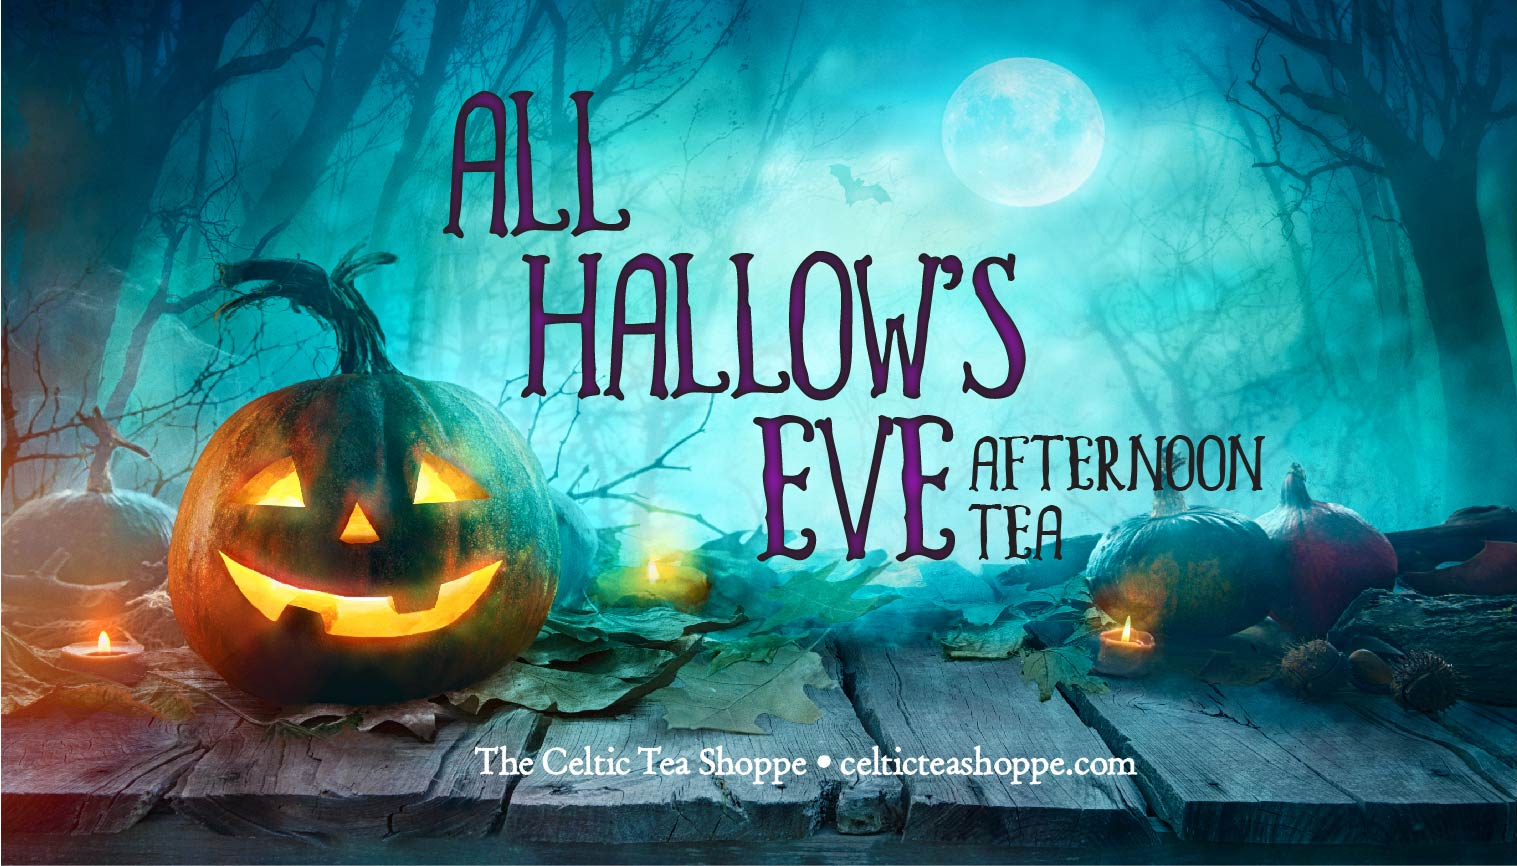 All Hallows' Eve Afternoon Tea